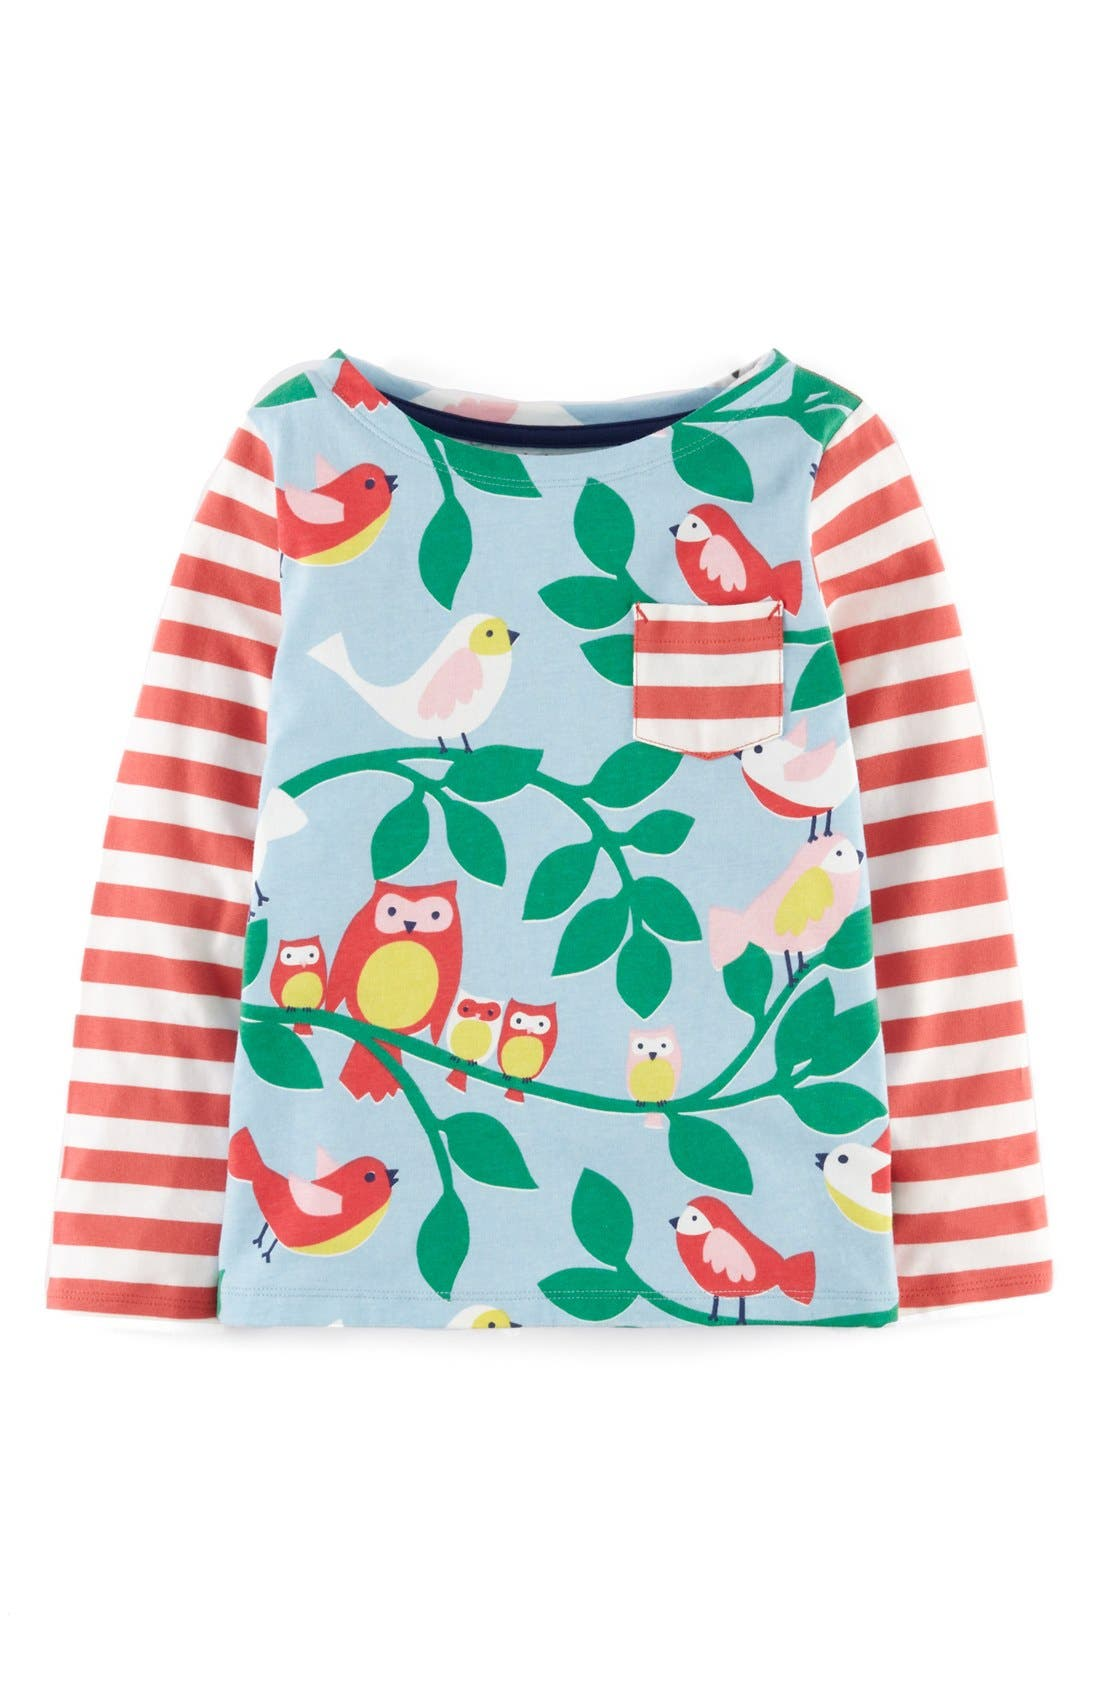 Main Image - Mini Boden Hotchpotch Tee (Toddler Girls, Little Girls & Big Girls)